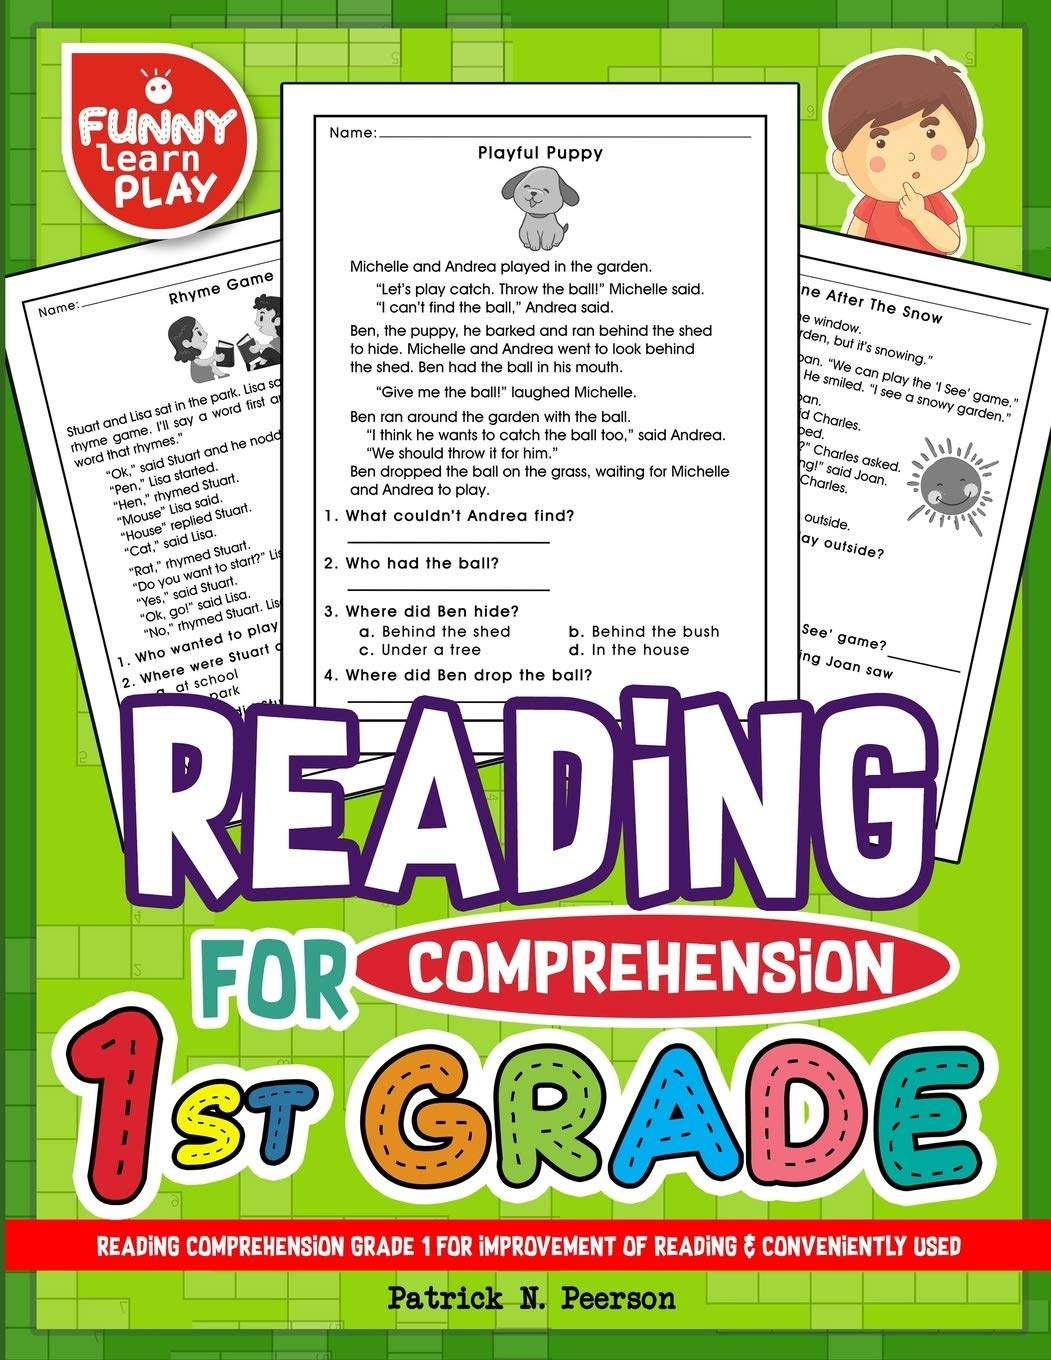 - Reading Comprehension Grade 1 For Improvement Of Reading & Conveniently  Used: 1st Grade Reading Comprehension Workbooks For 1st Graders To Combine  Fun & Education Together: Peerson, Patrick N.: 9781727236675: Books -  Amazon.ca